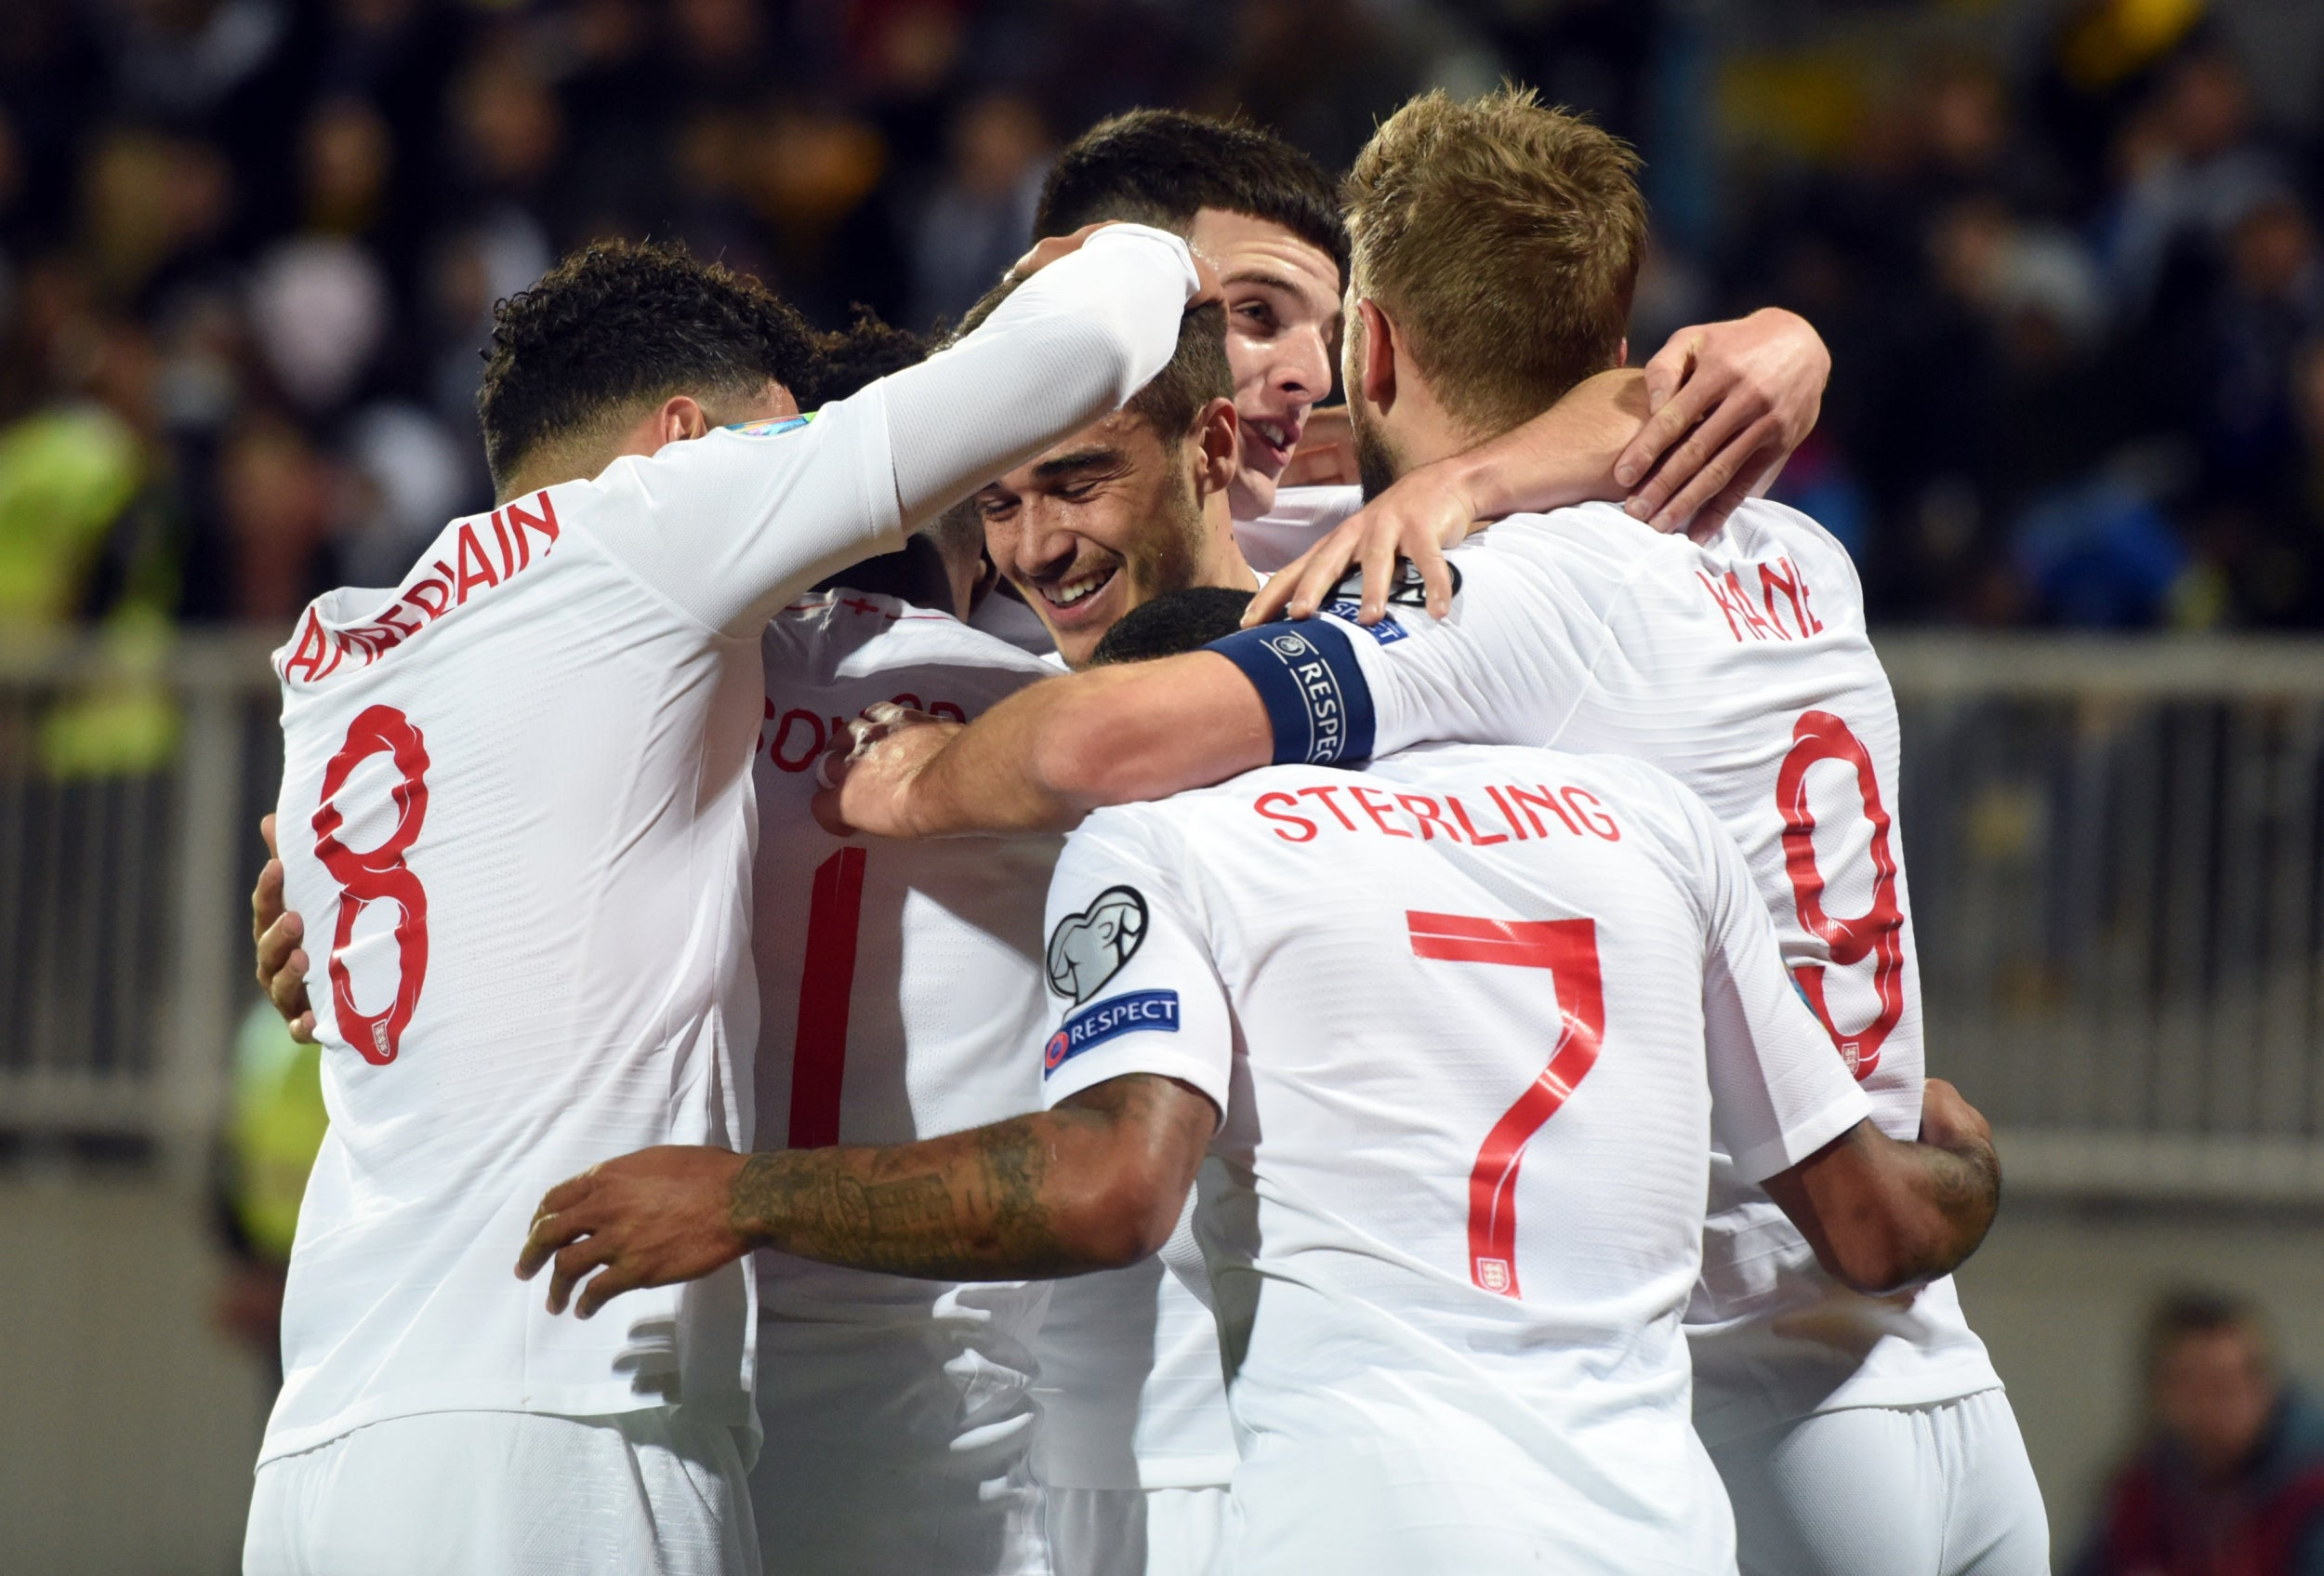 Kosovo vs England: Player ratings